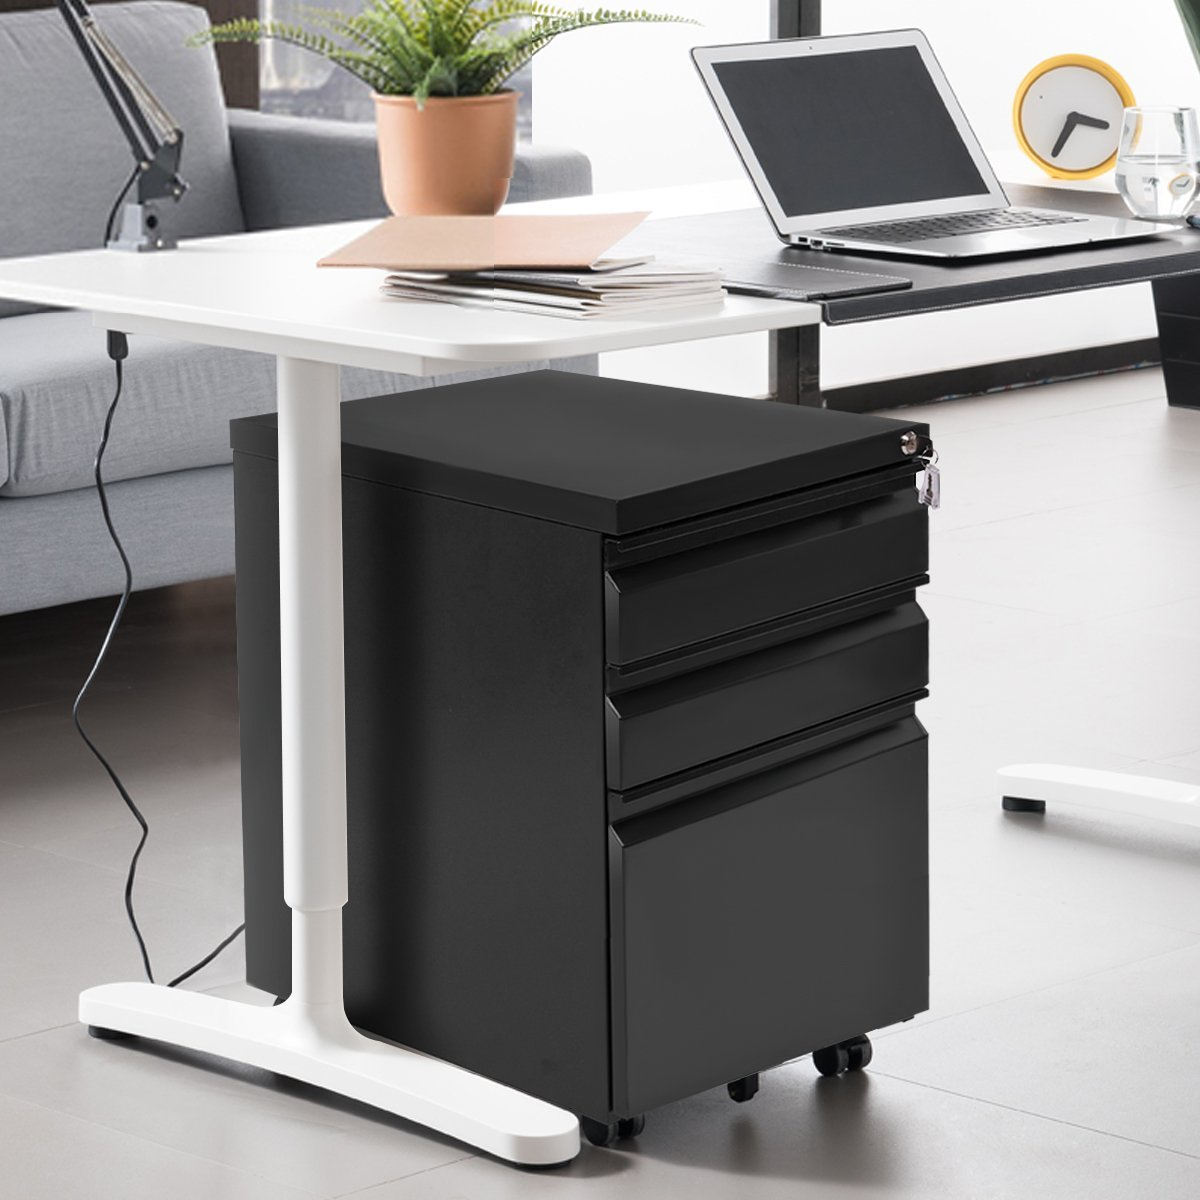 Giantex Rolling Mobile File W/3 Lockable Drawers and Pedestal for Office Study Room Home Steel Storage Cabinet by Giantex (Image #3)